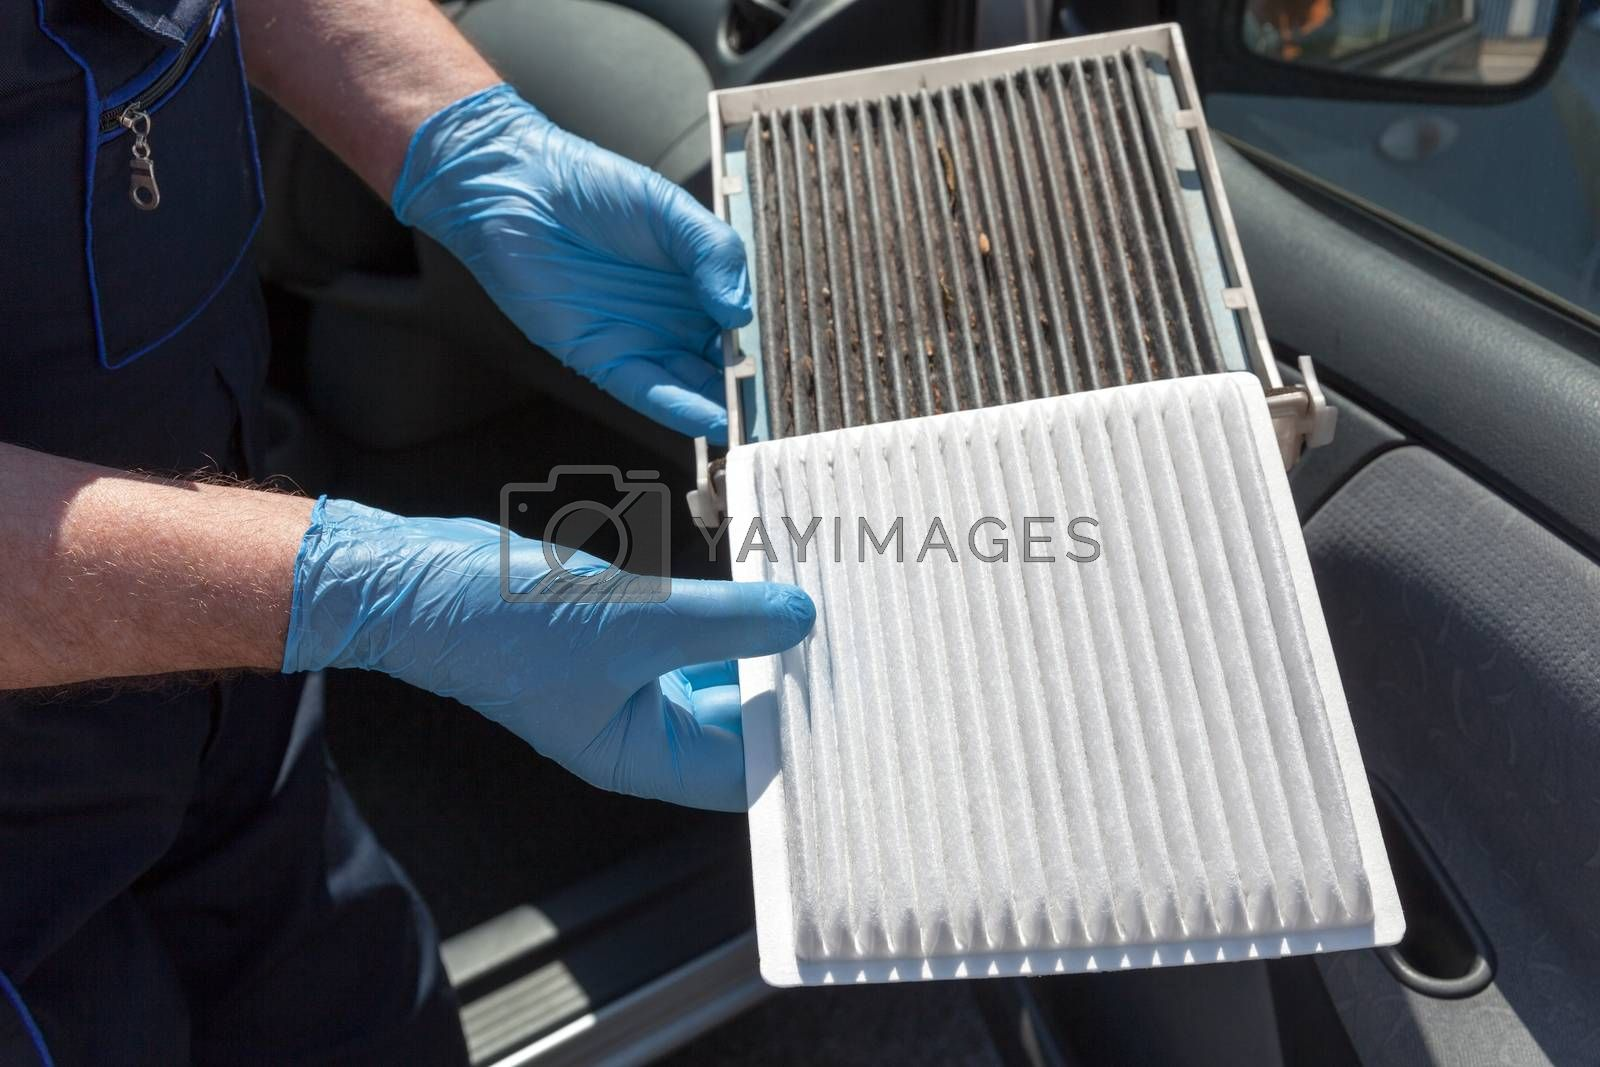 Replacing the pollen air filter. Old and new cabin air filter for a car.